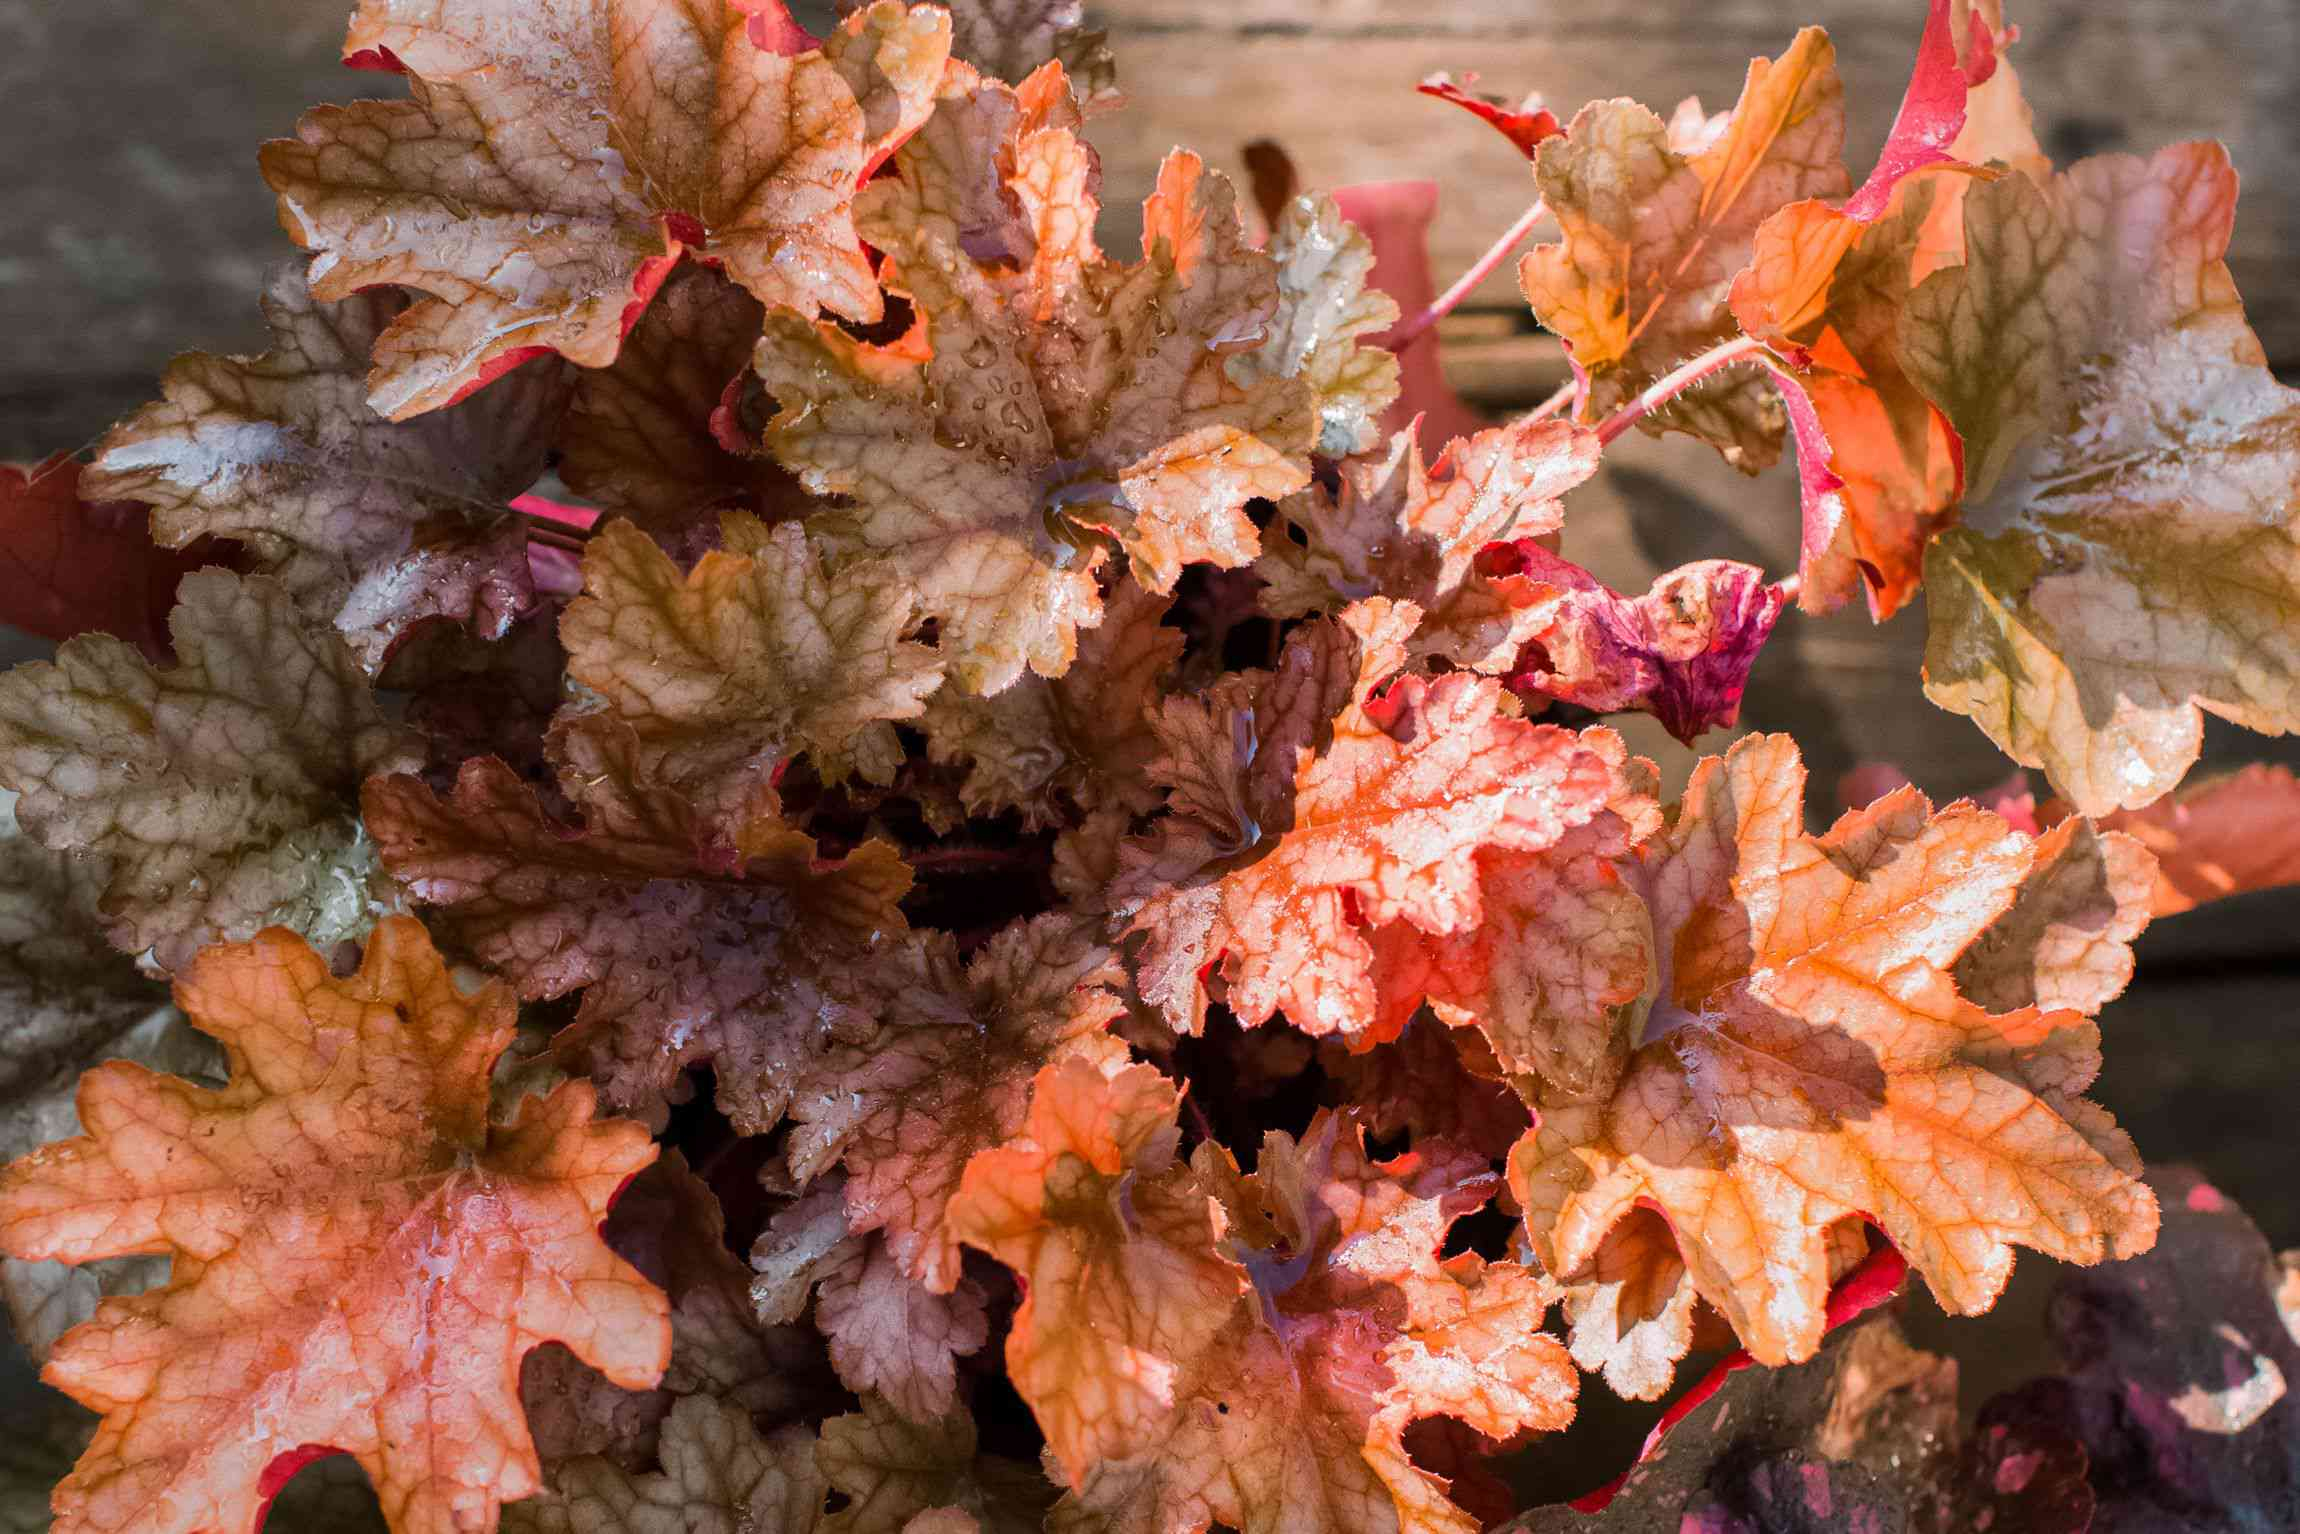 Coral bell foliage with brown, red and copper colored leaves in garden closeup